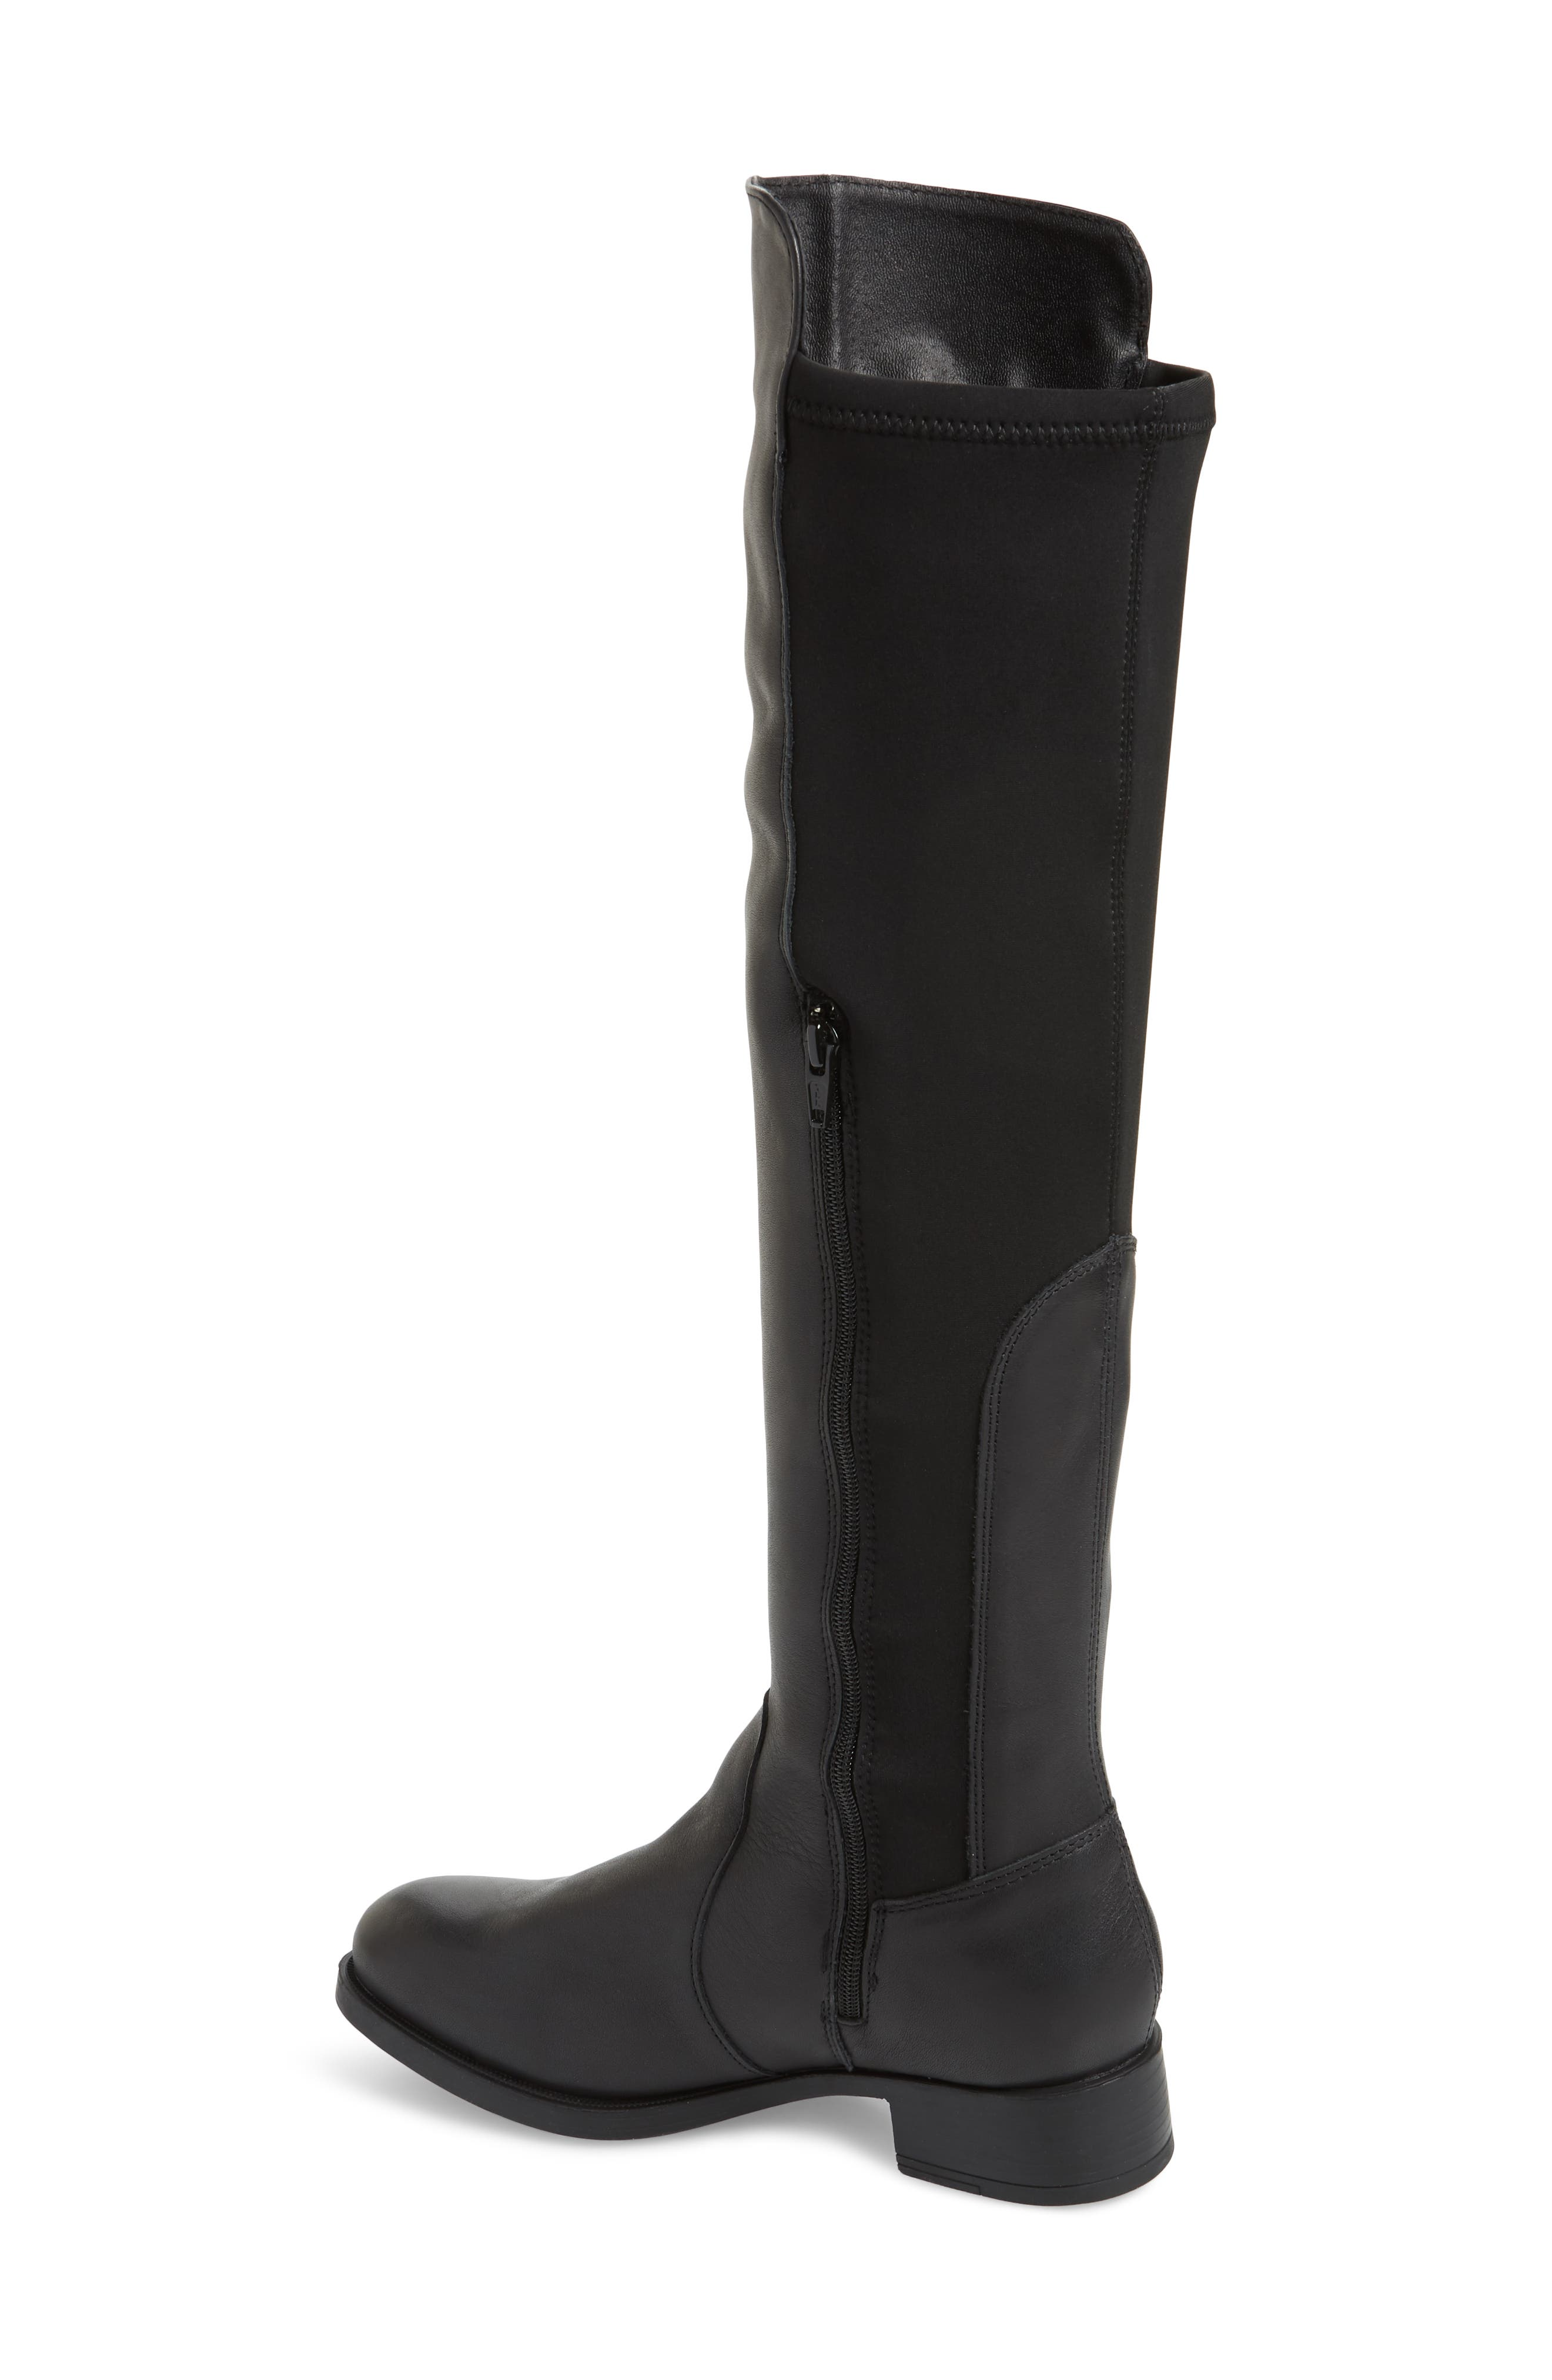 BOS. & CO.,                             Bunt Waterproof Over the Knee Boot,                             Alternate thumbnail 2, color,                             BLACK MELBOURNE/ LYCRA